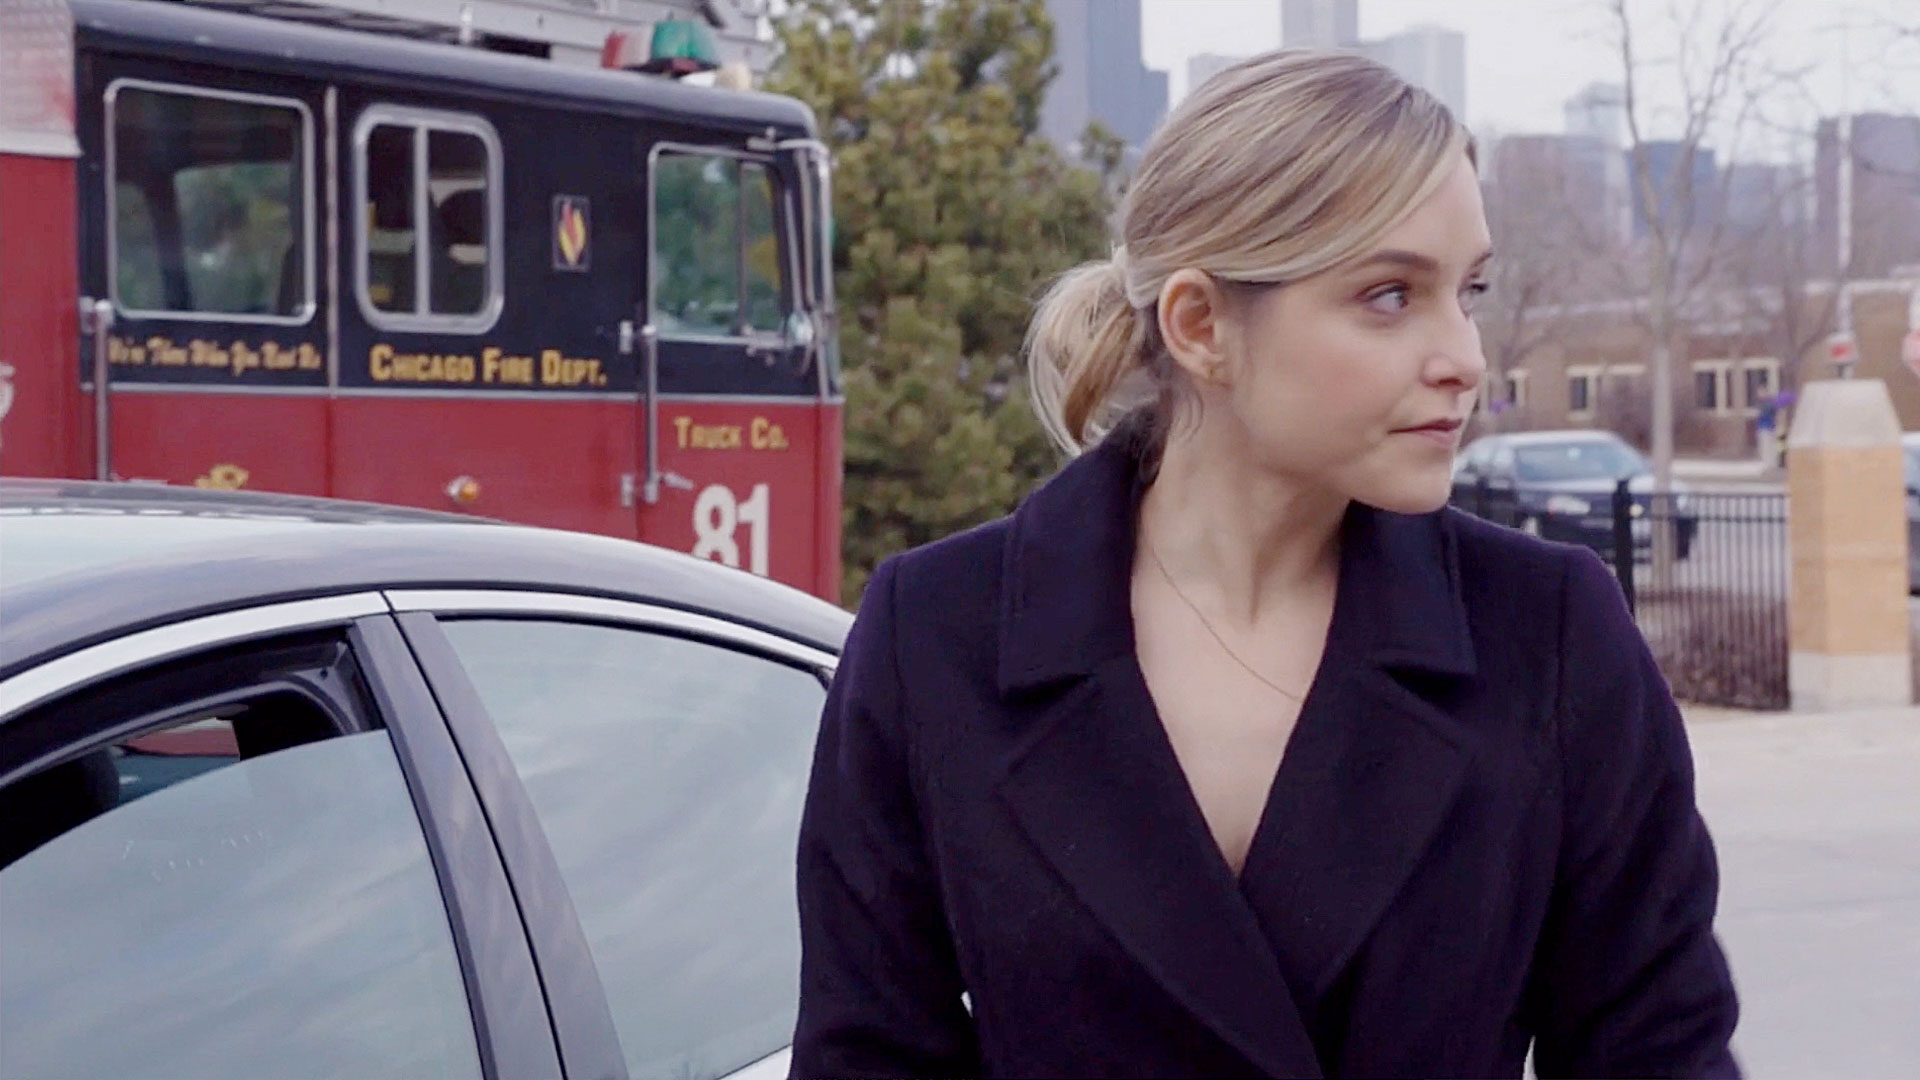 S4_Chicago_Fire_Jenny_Mollen_163_WEB.jpg